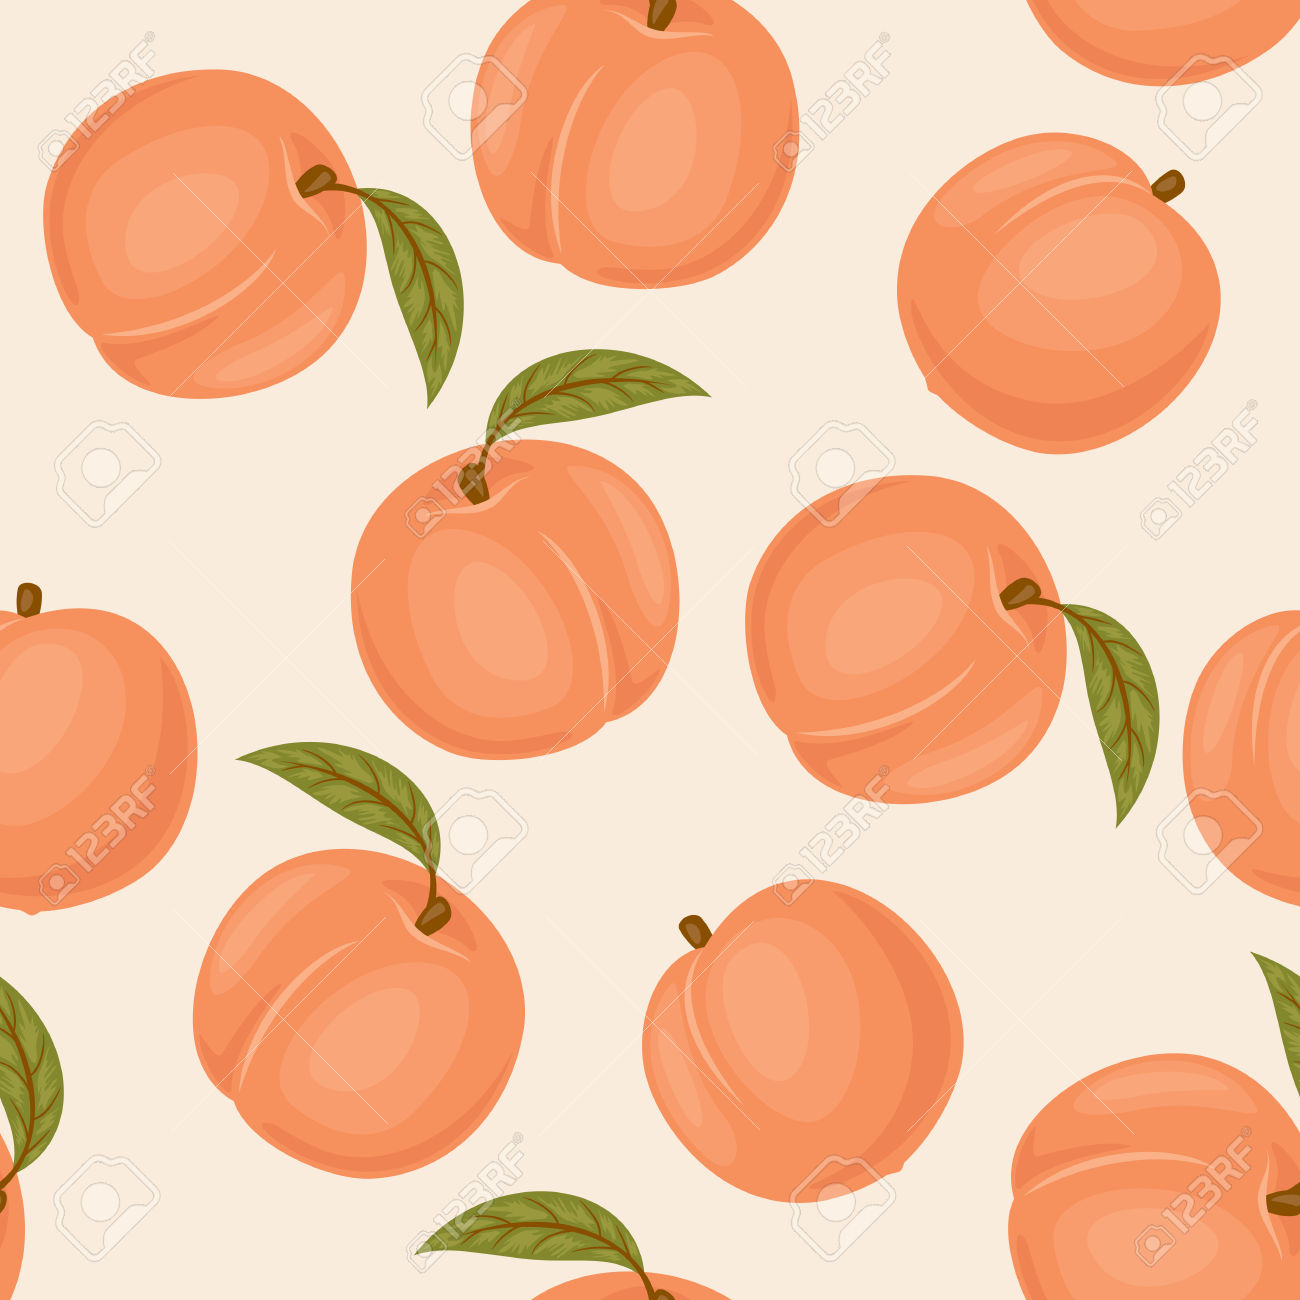 Leaves of peach clipart - Clipground